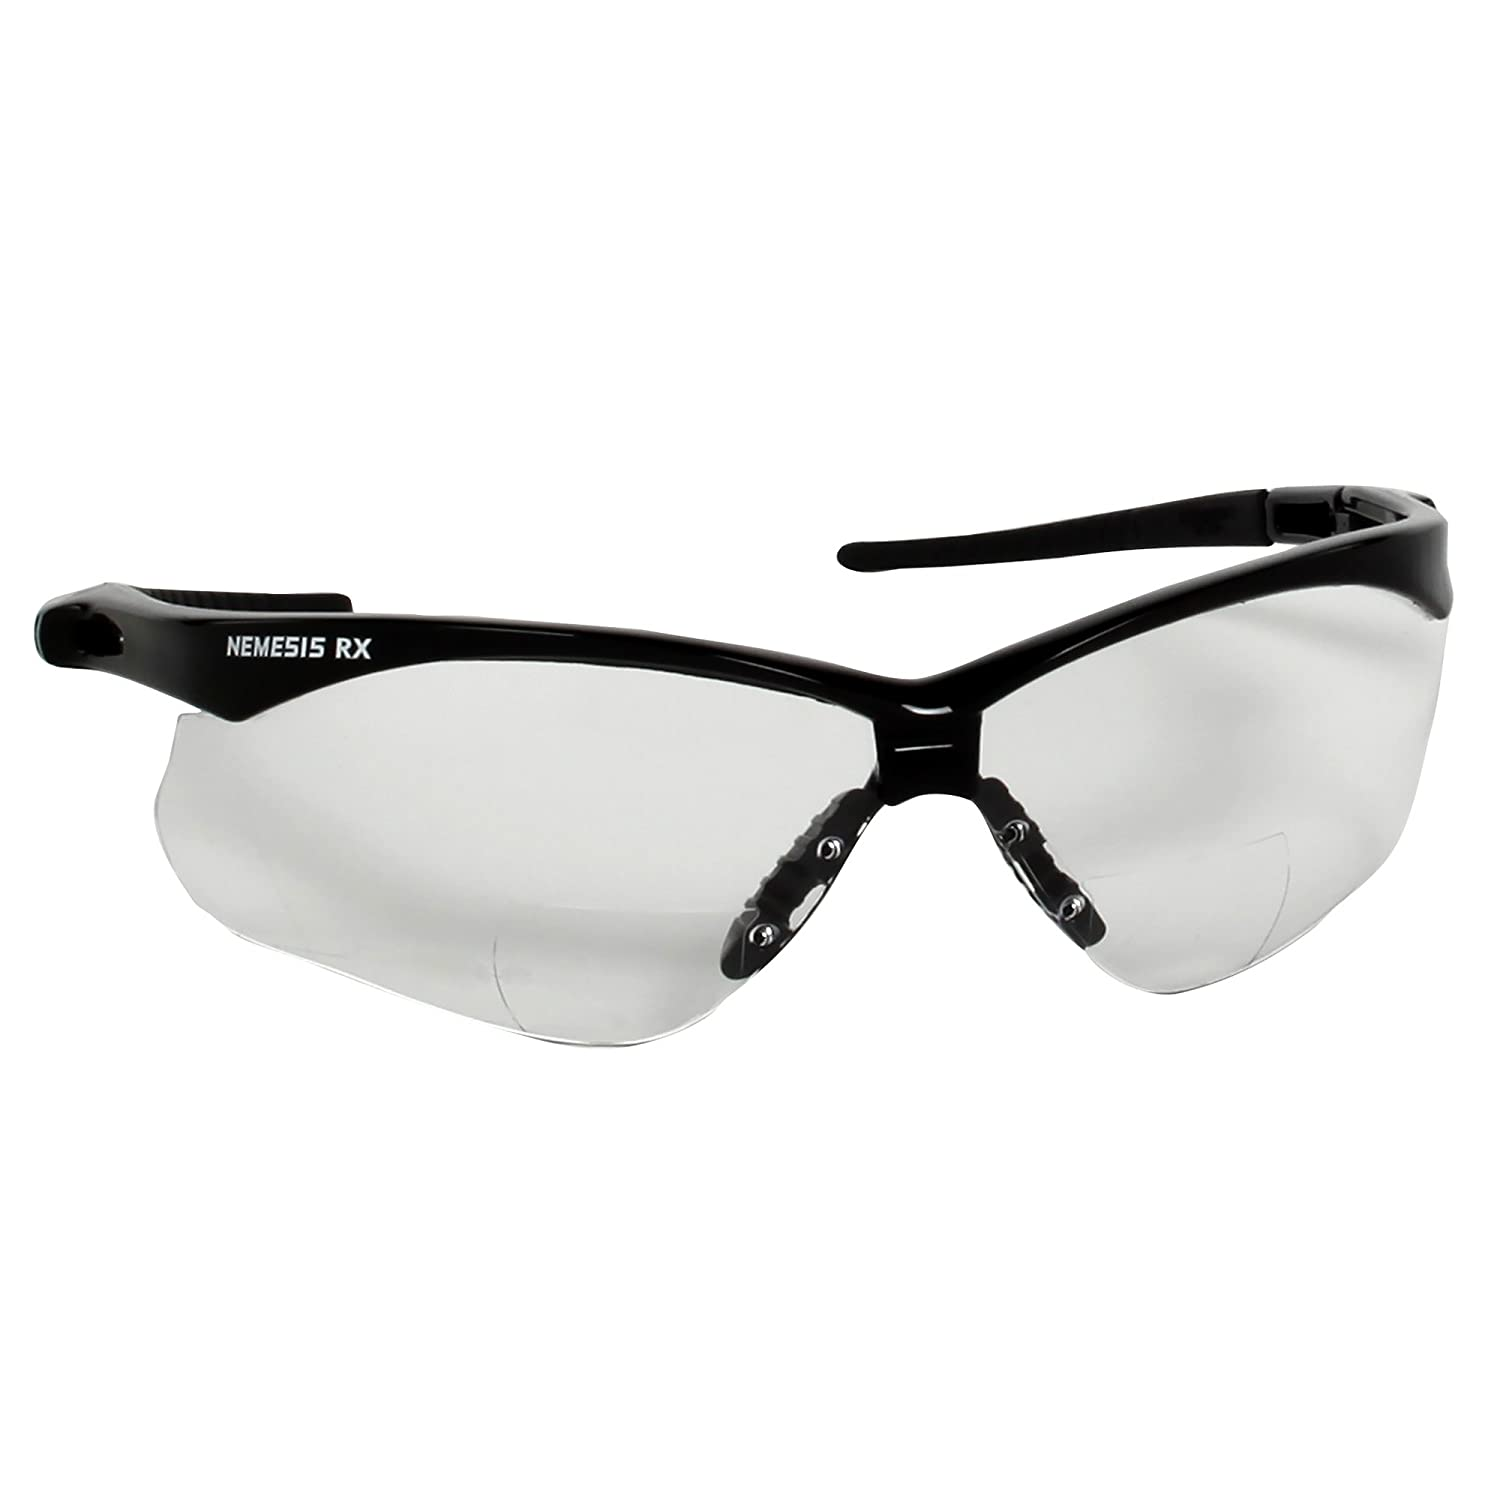 Jackson Safety 20558 V60 30-06 Readers Safety Glasses, IRUV Shade 5.0 Lenses with +2.0 Diopters, Black Frame (Pack of 6) by Jackson Safety B00982XV98